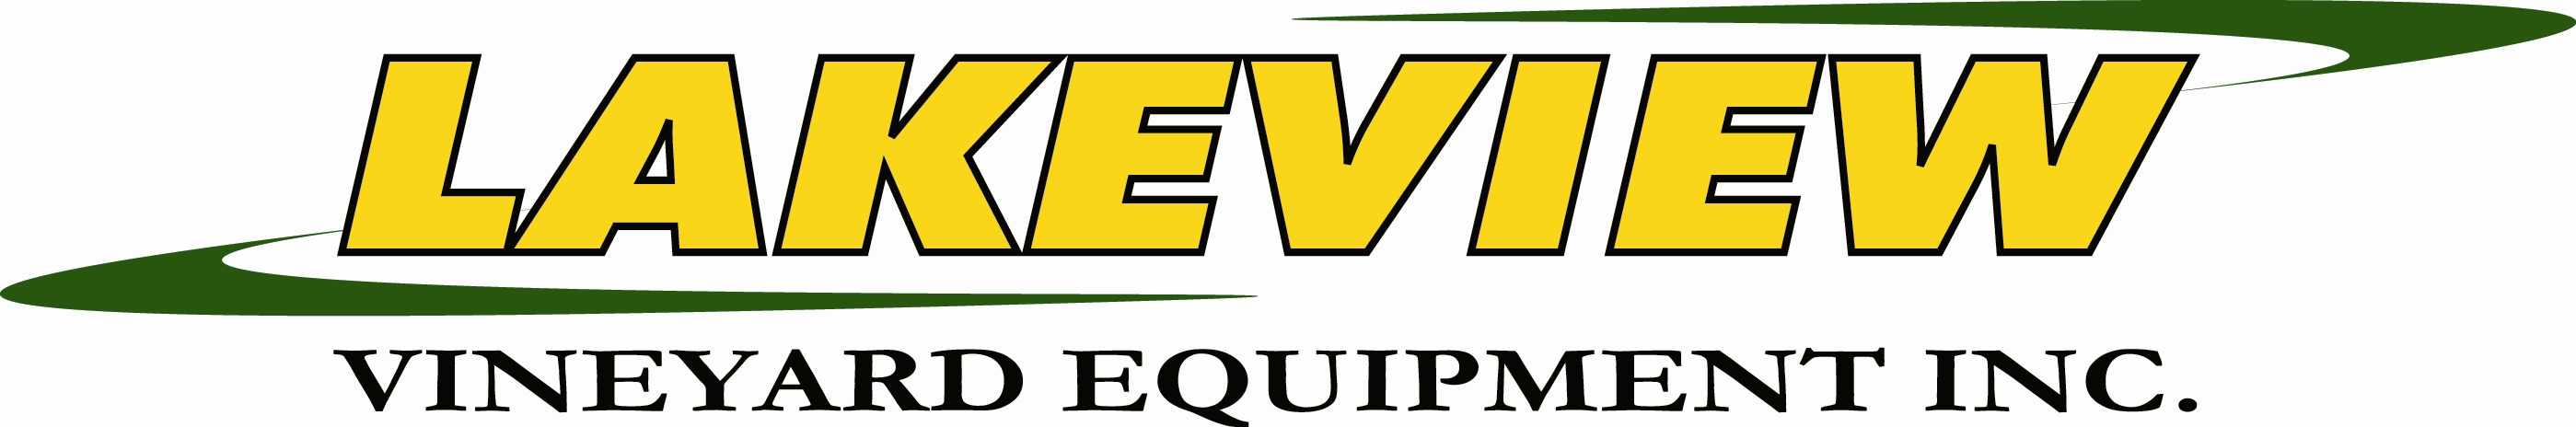 Lakeview Vineyard Equipment logo